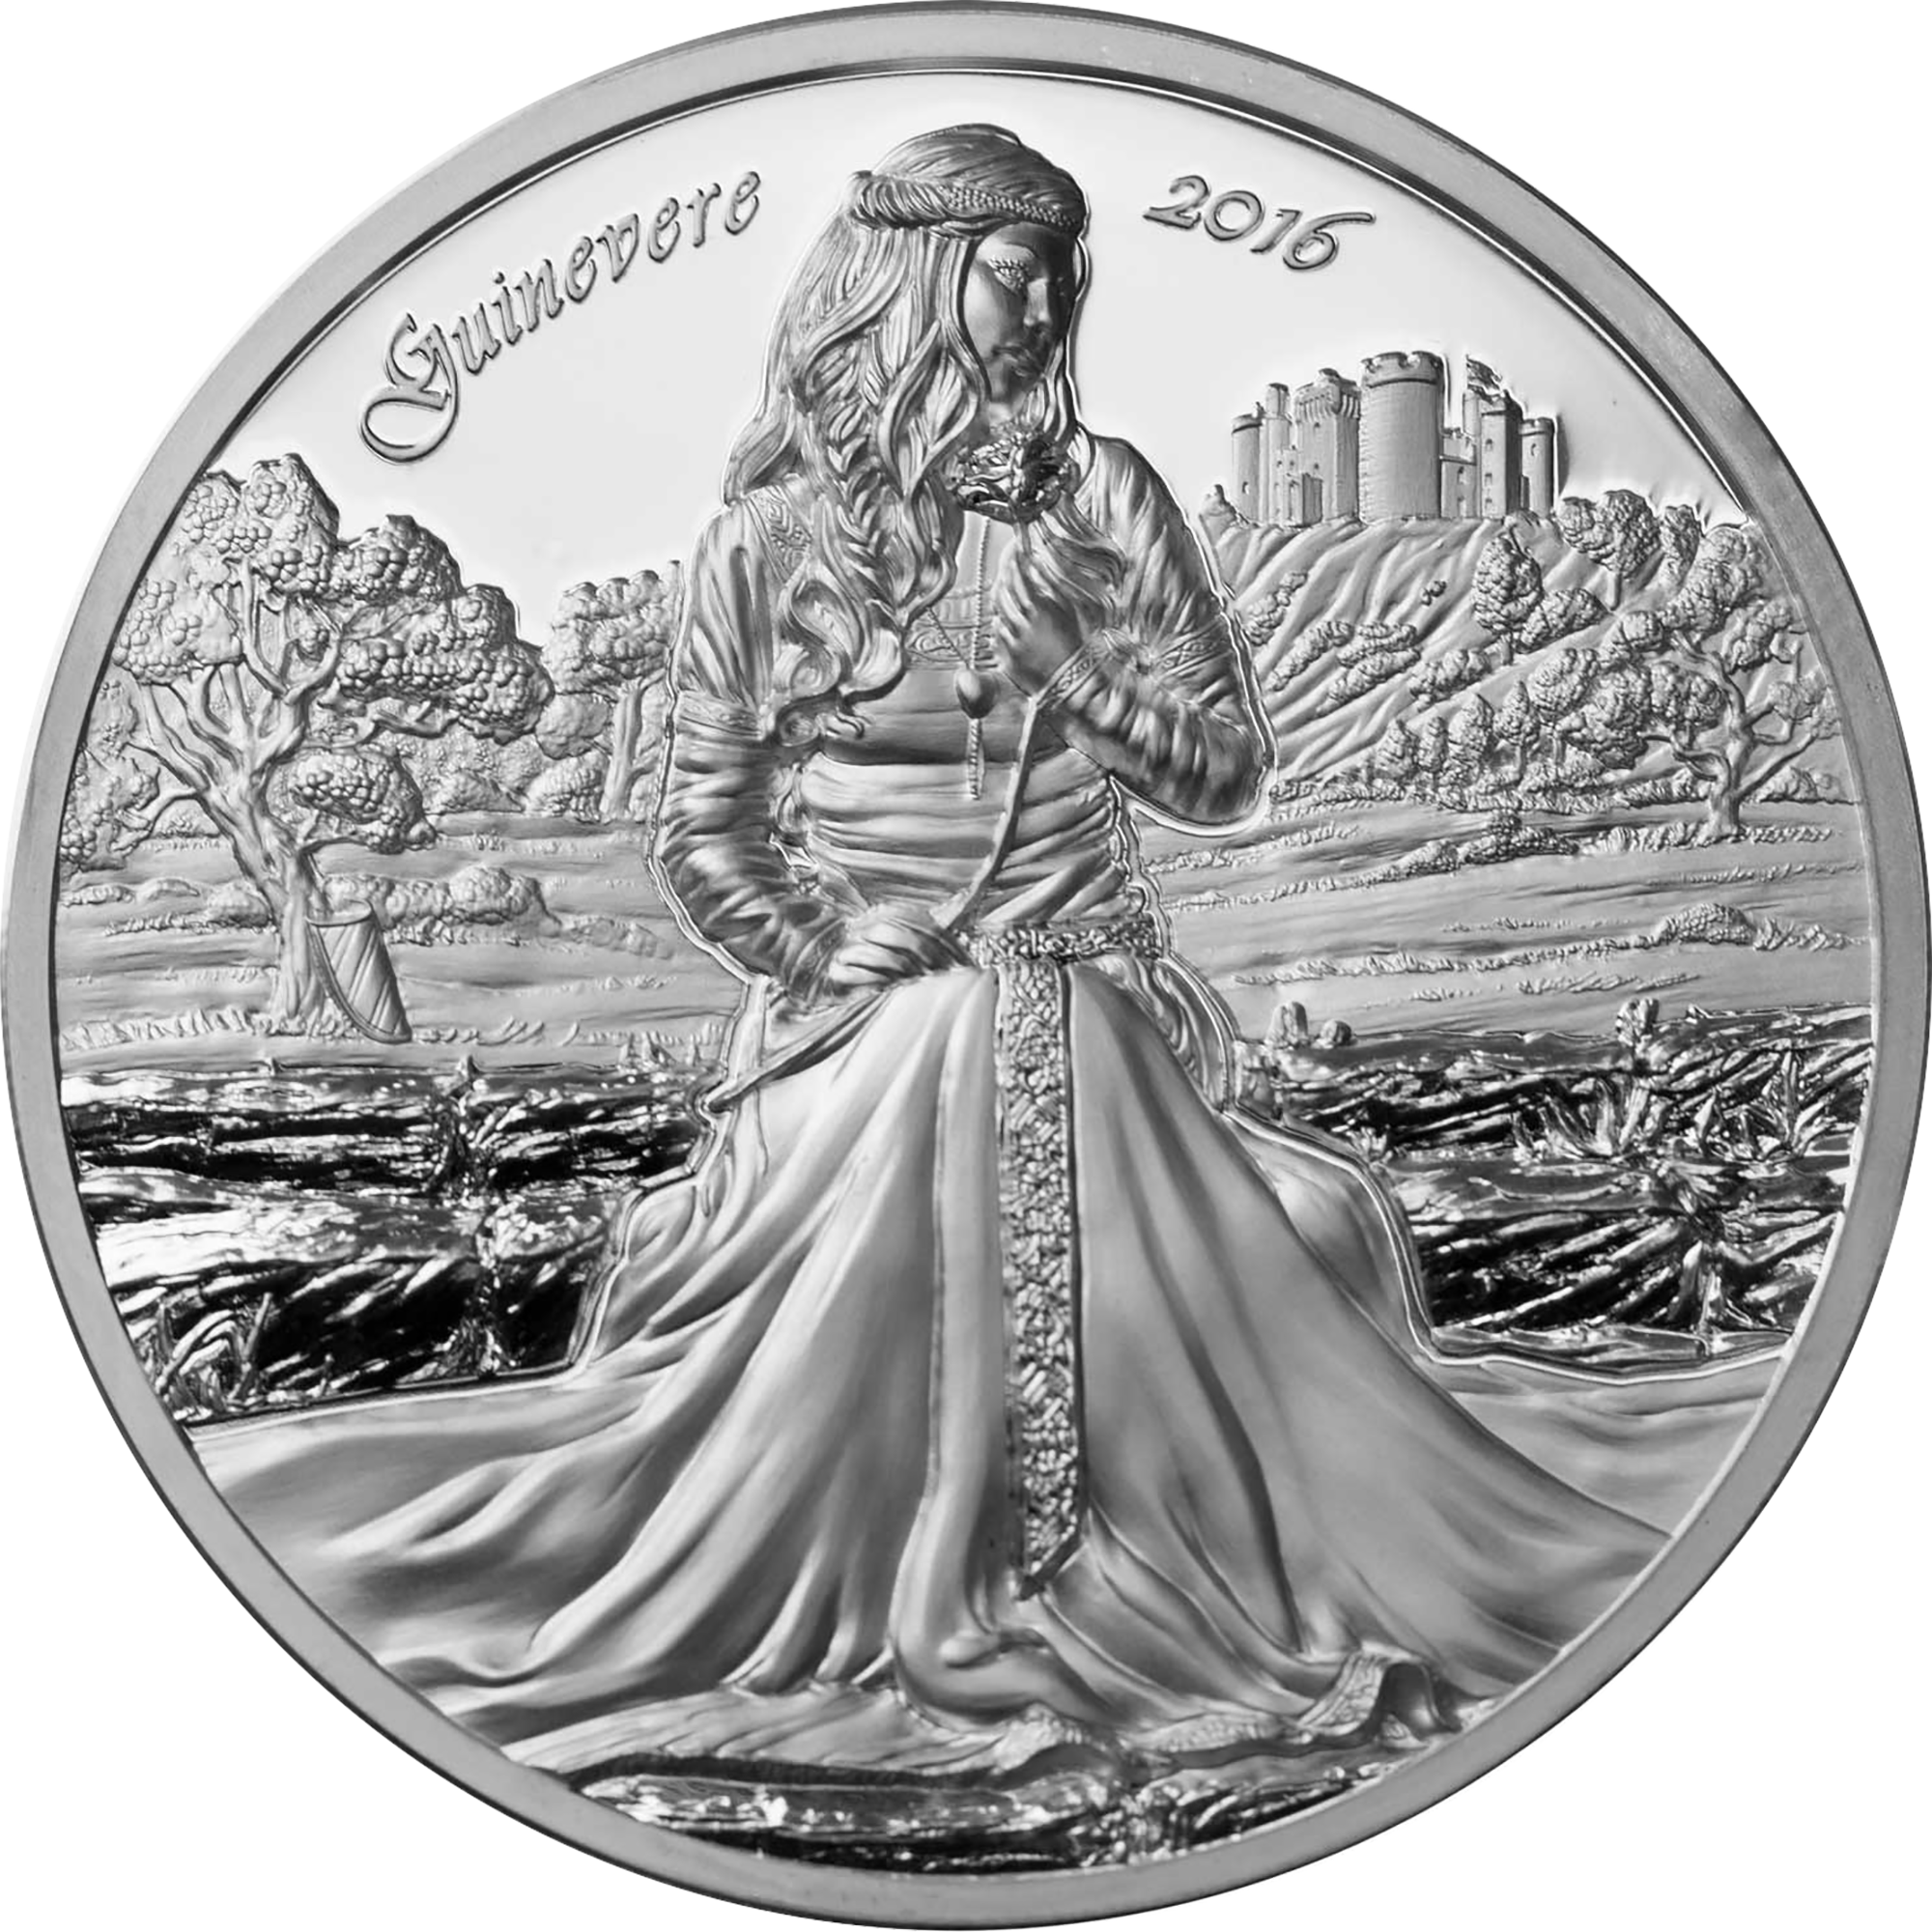 guinevere joins king arthur in ultra high relief camelot series